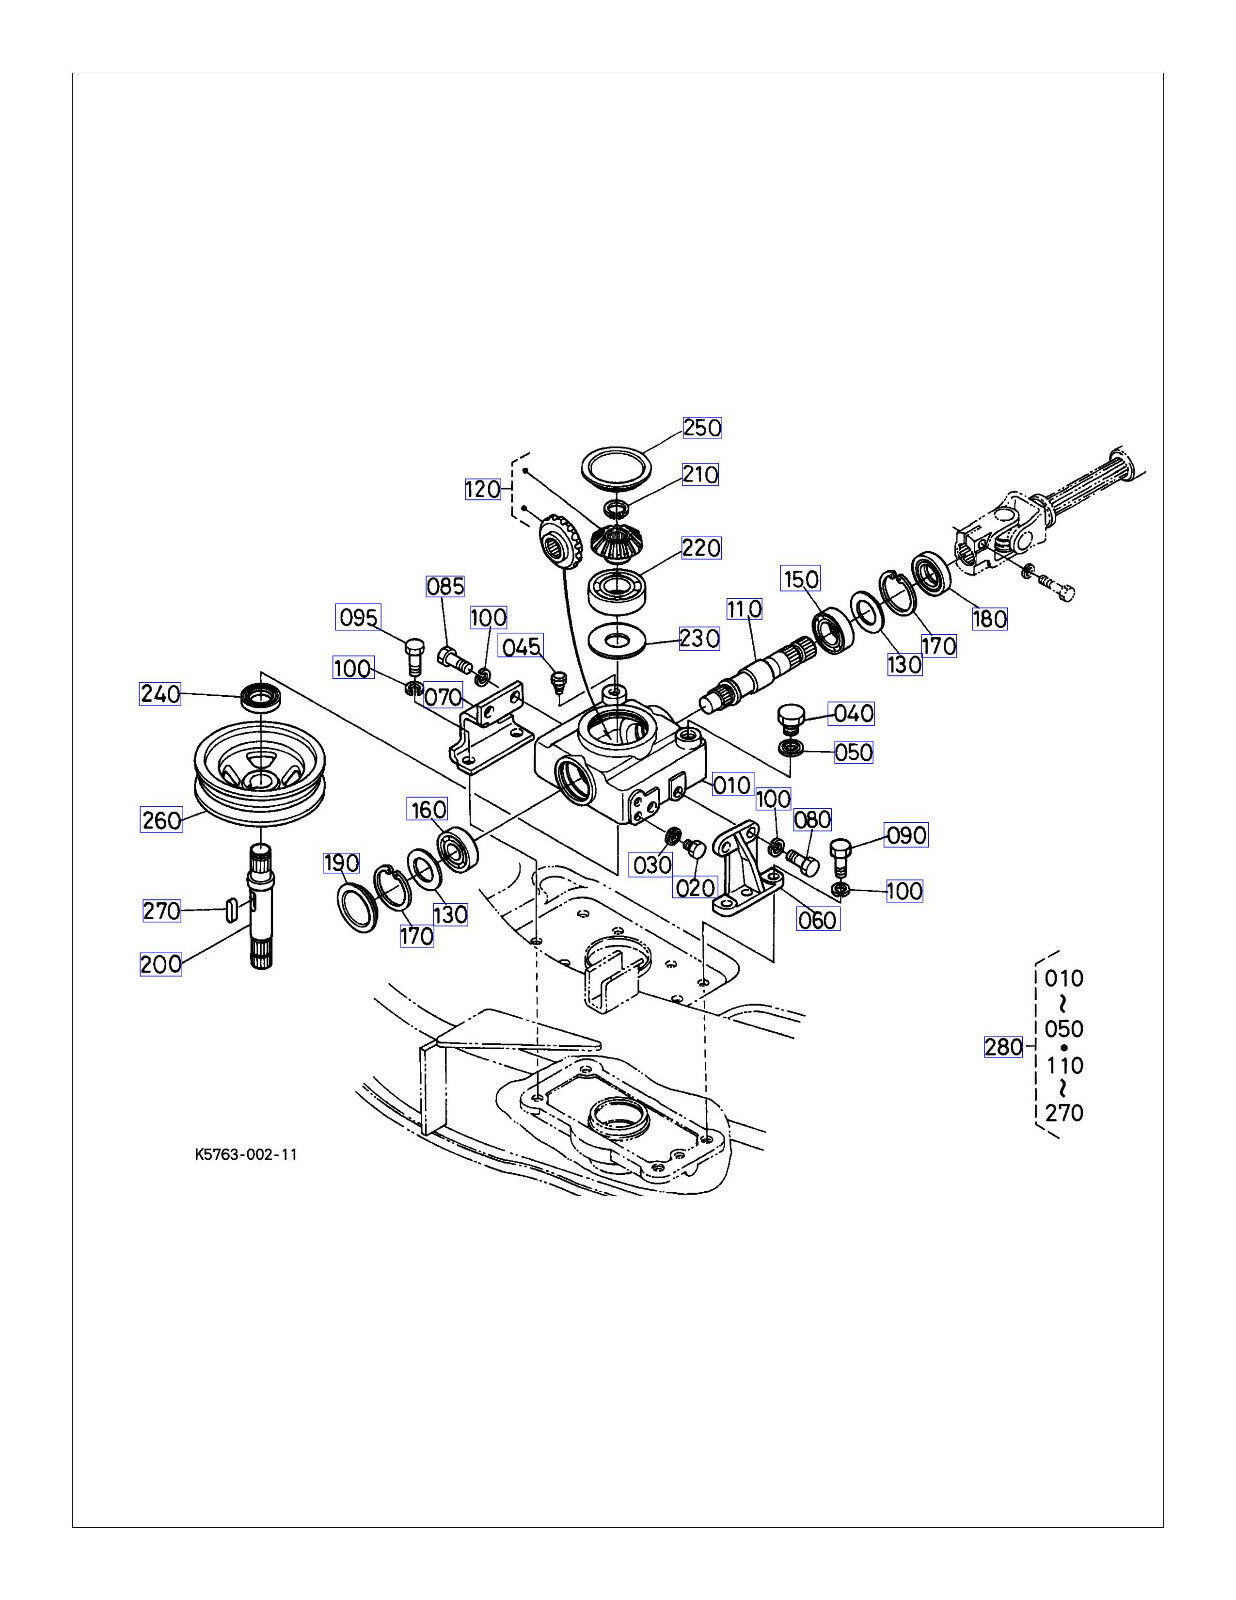 Kubotum Zd21 Part Diagram